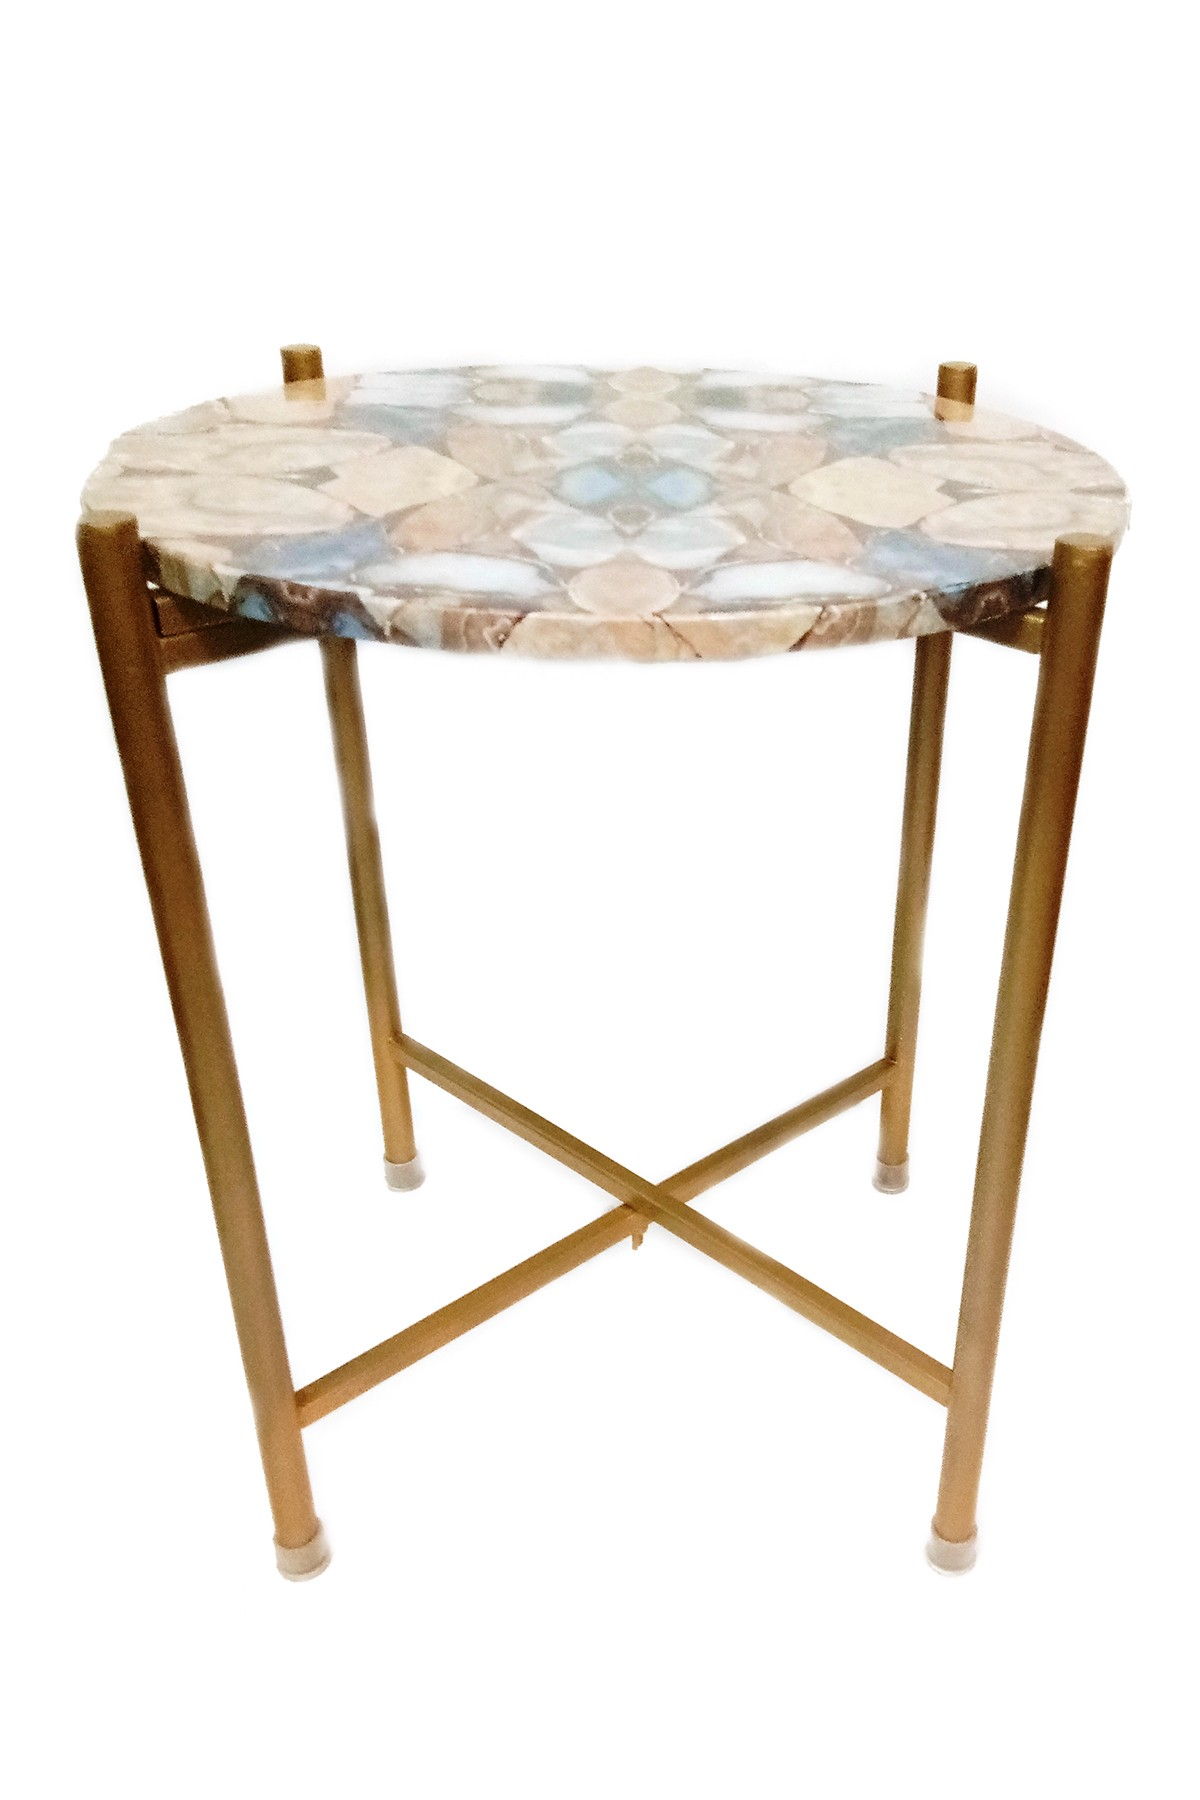 decor agate top side table nordstrom rack glass accent gold wood coffee white round linens end with charging station bedding storage wardrobe furniture kitchen cupboards patterned